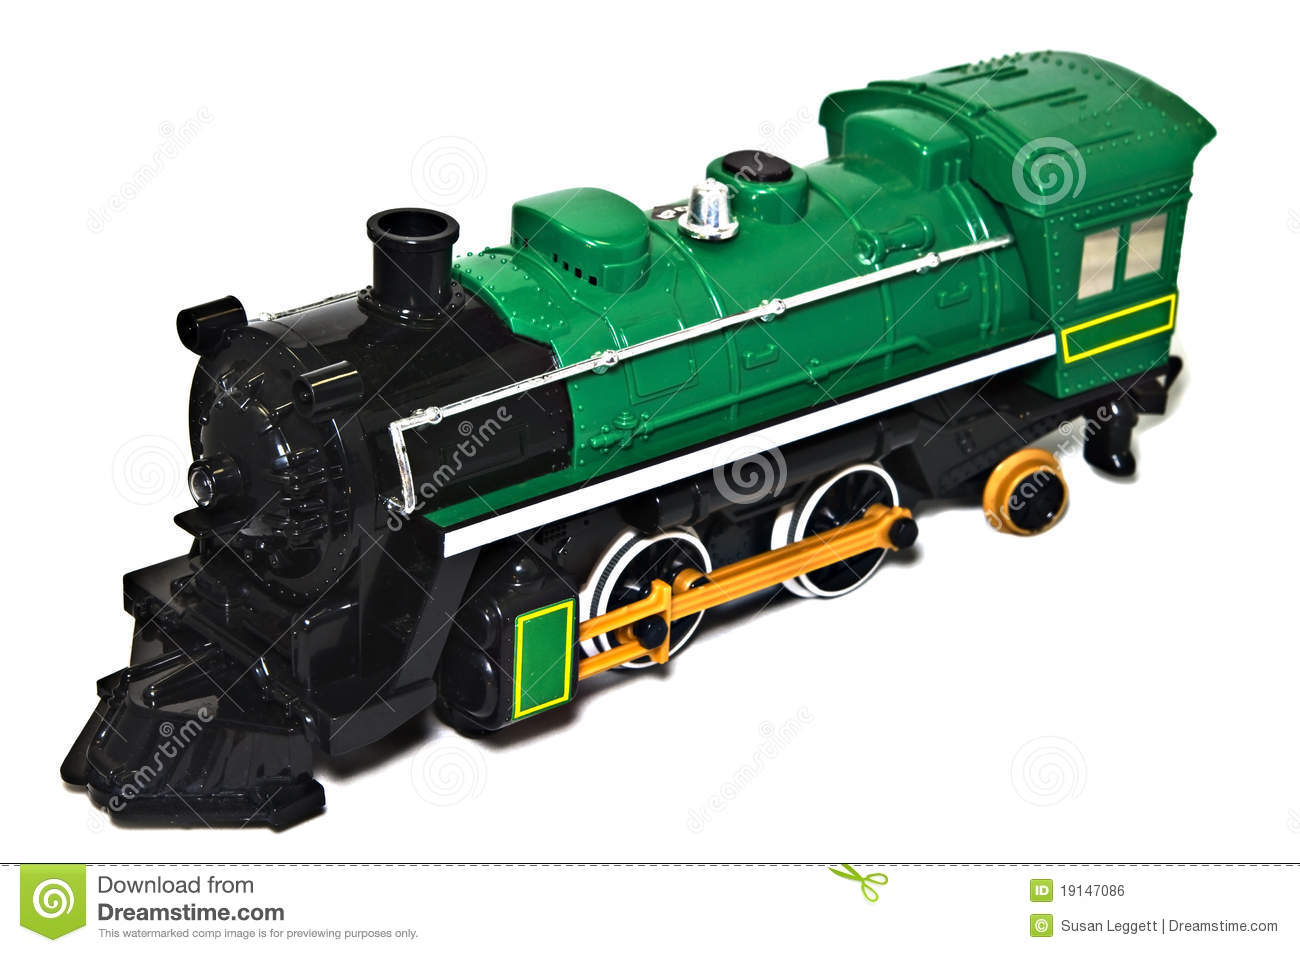 Toy train engines 2014